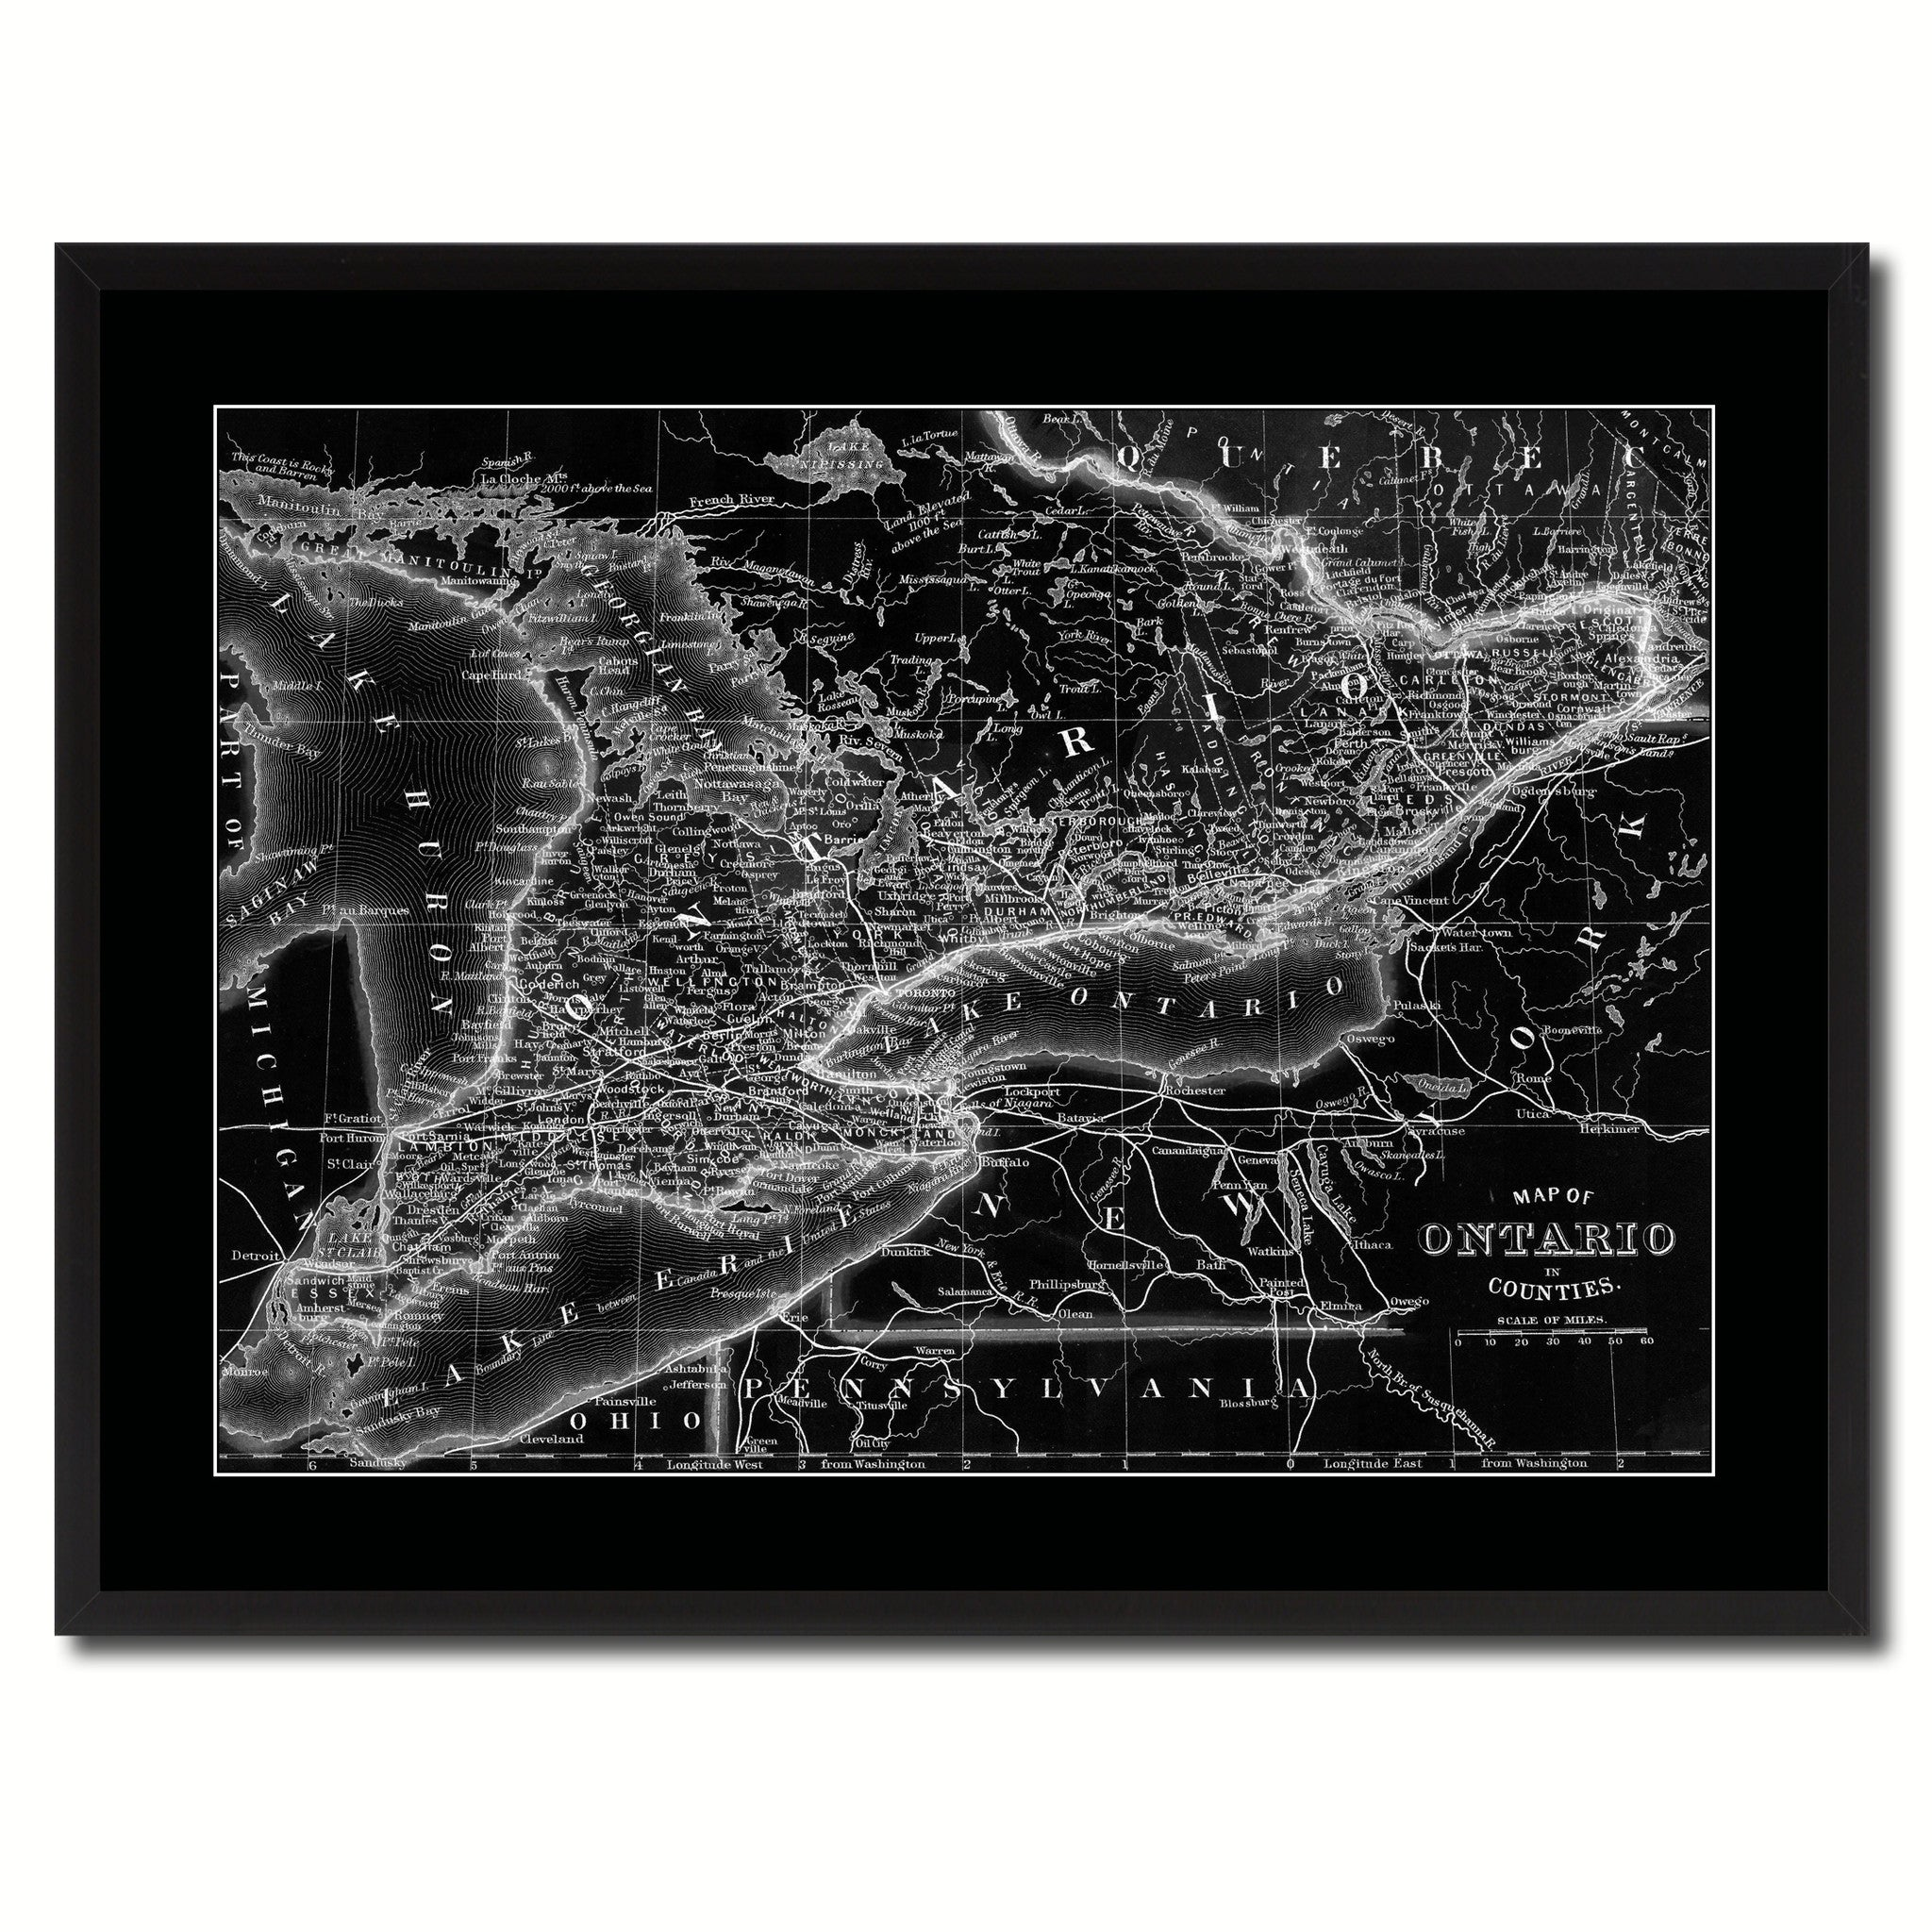 Ontario Canada Vintage Monochrome Map Canvas Print, Gifts Picture Frames Home Decor Wall Art